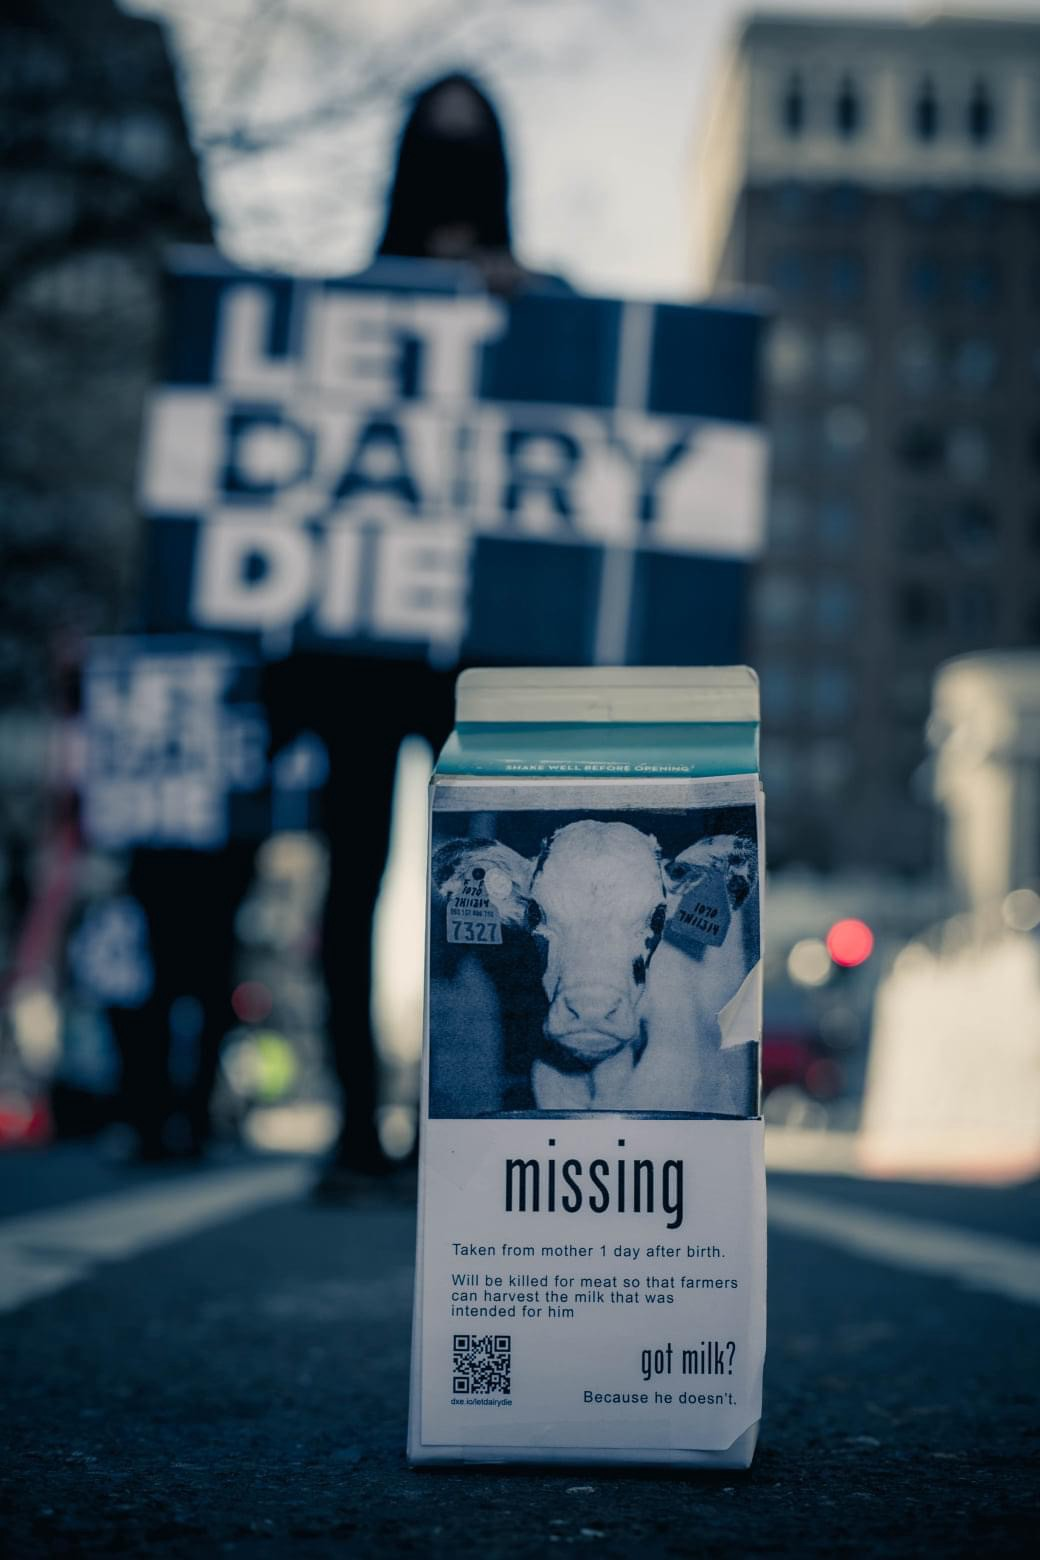 """Pictured is a milk carton that says """"Missing. Taken from mother 1 day after birth. Will be killed for meat so that farmers can harvest the milk that was intended for him. Got milk? Because he doesn't."""""""